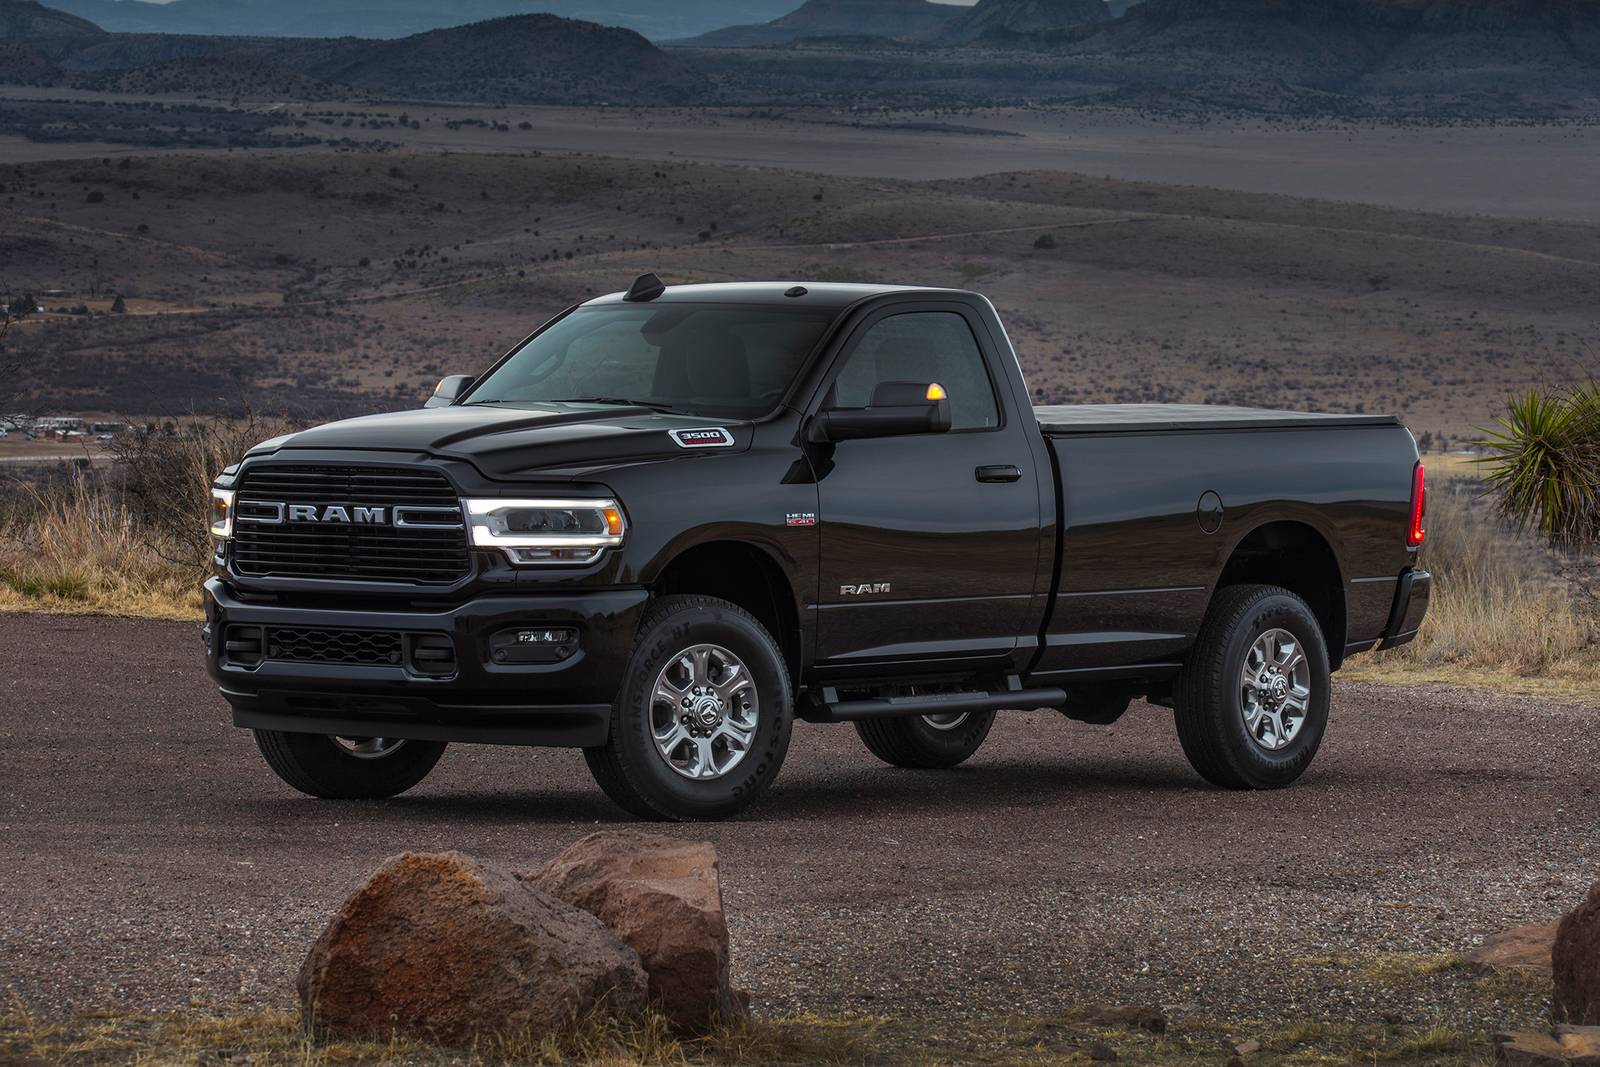 2021 Ram 3500 Regular Cab Review Pricing Performance Mpg Features Trims And Rivals Comparison